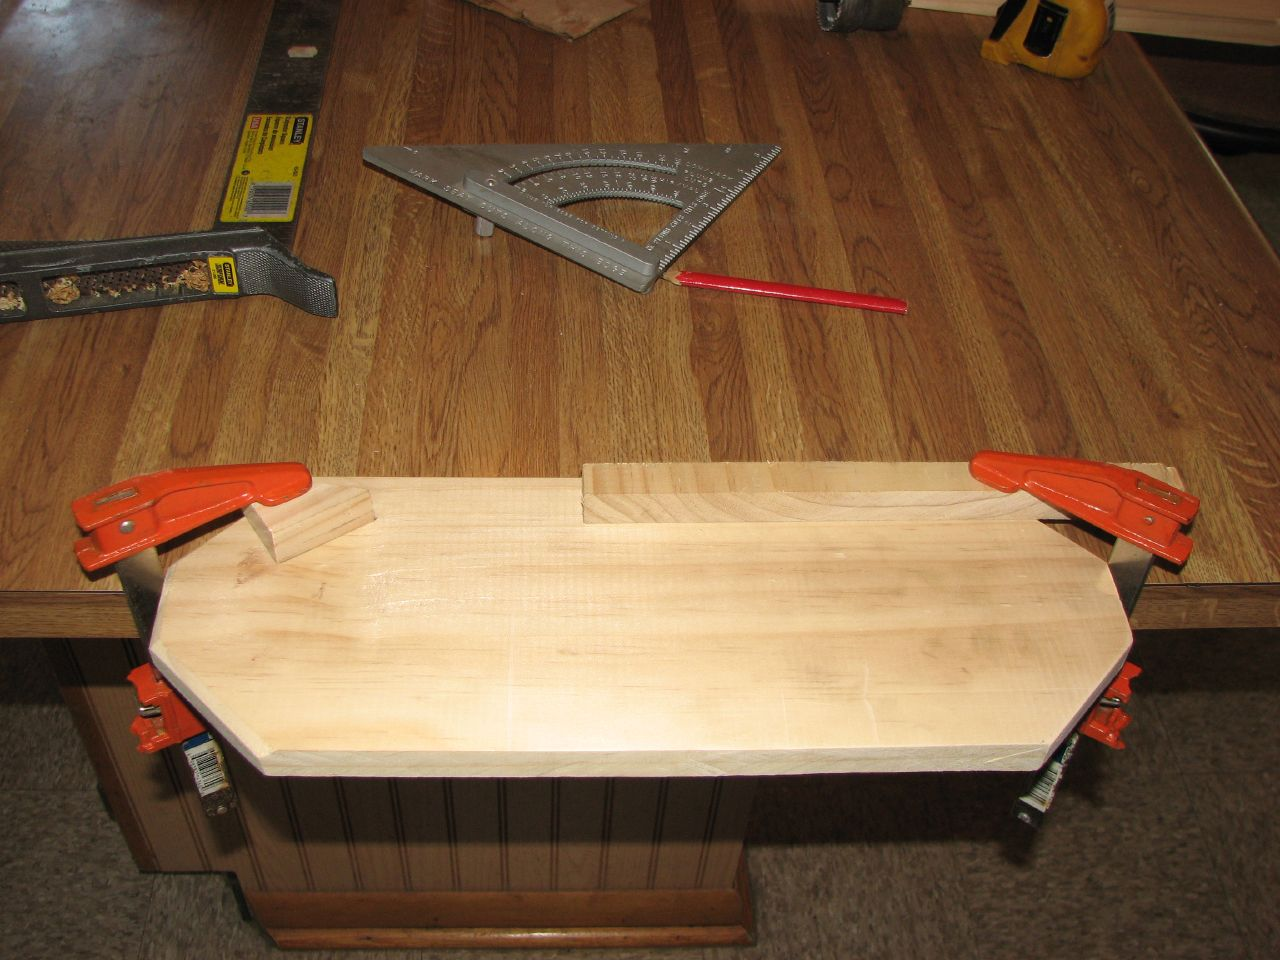 Cool Woodworking Projects For Beginners - Viewing Gallery